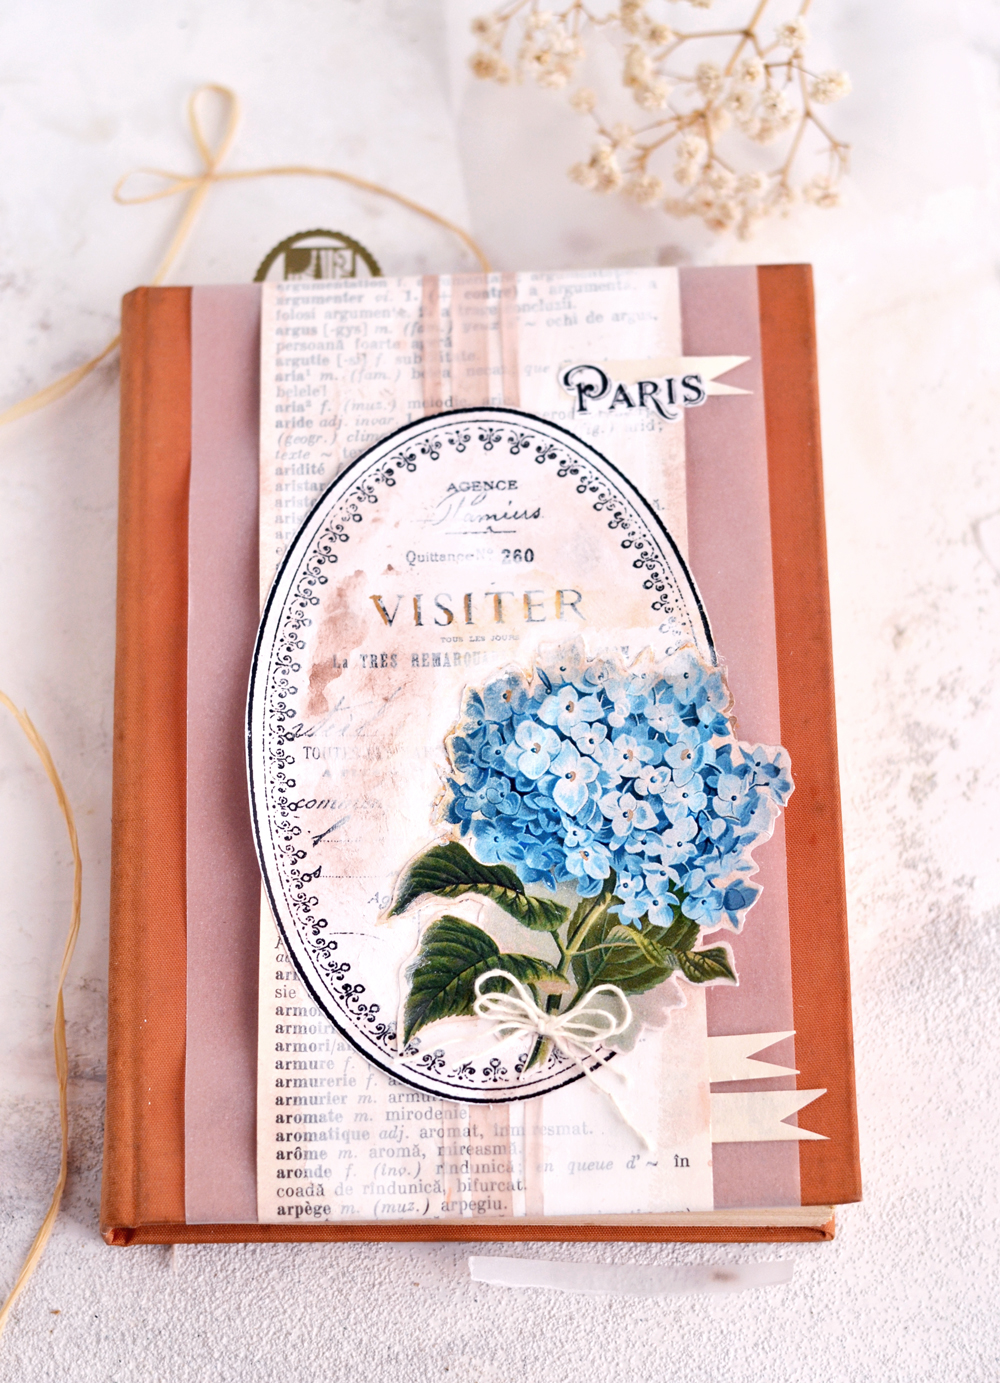 DIY Vintage French Art Journal Cover - learn how to easily make this DIY project using supplies that you might have around and an old dictionary! #DIY #vintage #freeprintable #hydrangea